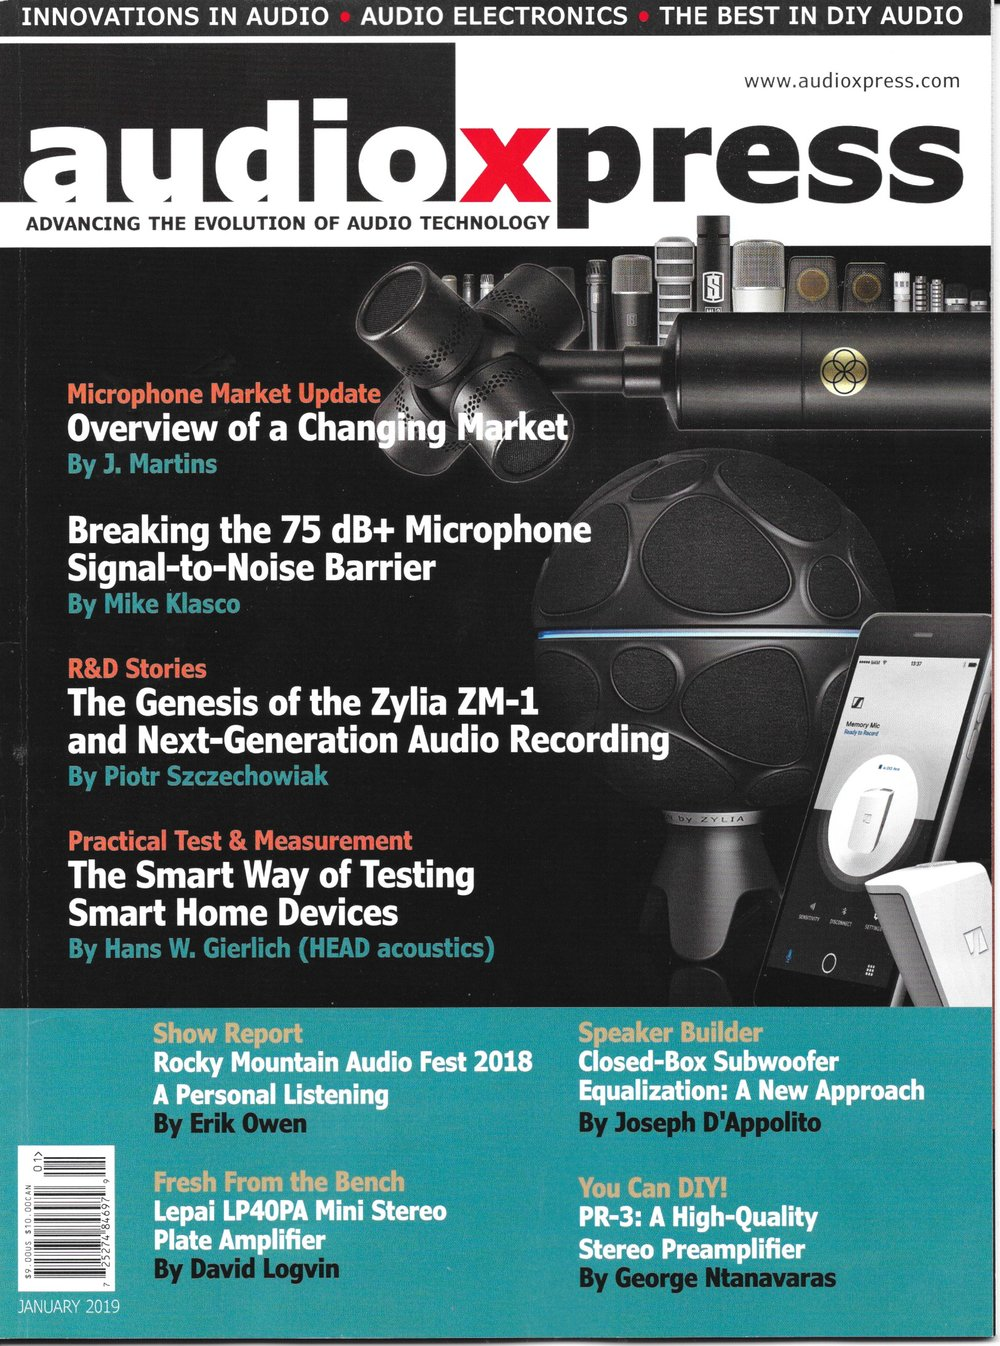 AXpress 2019 cover.jpeg